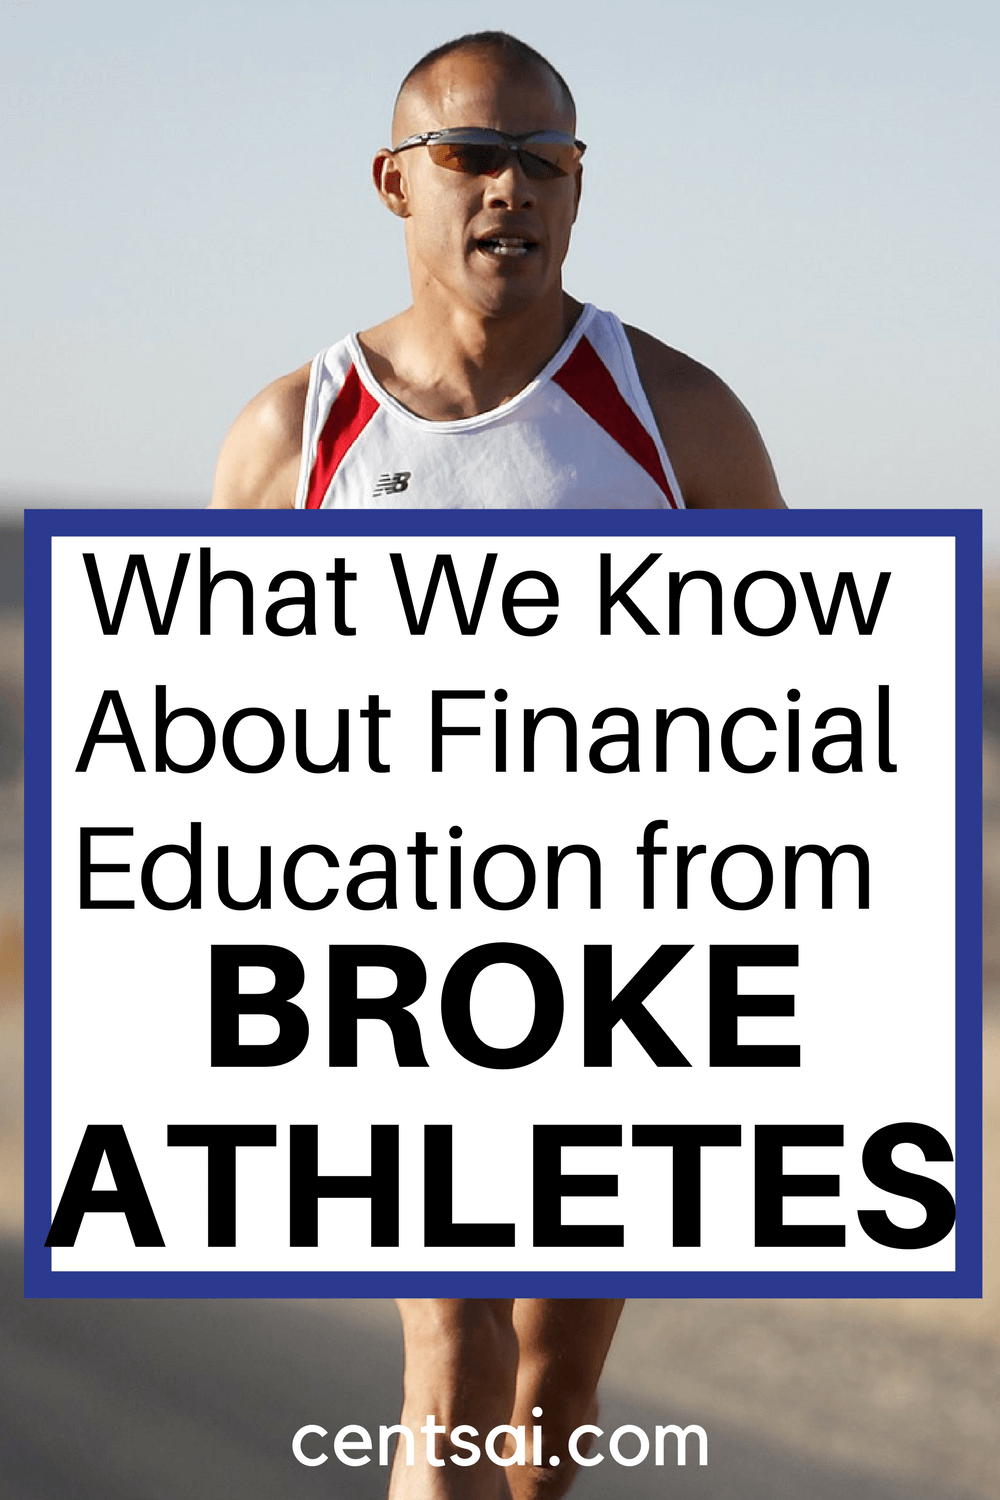 What We Know About Financial Education from Broke Athletes. Even high -earning, successful people are not immune to problems of financial illiteracy. But financial education is a solution!